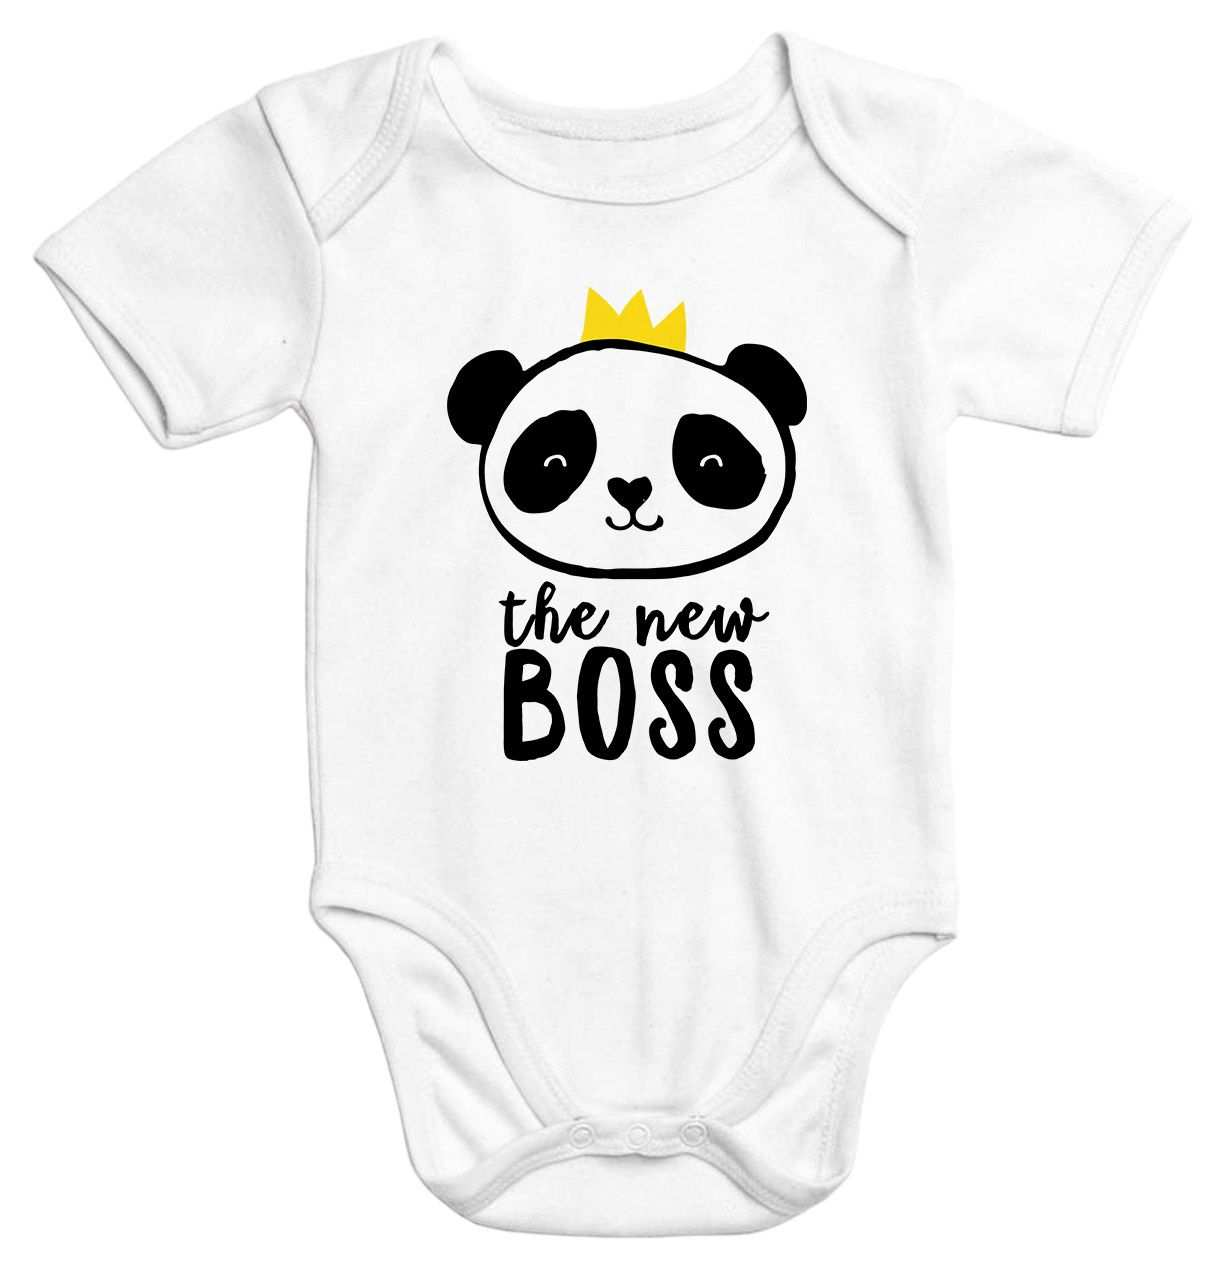 Baby Body Mit Aufdruck The New Boss Panda Mit Krone Bio Baumwolle